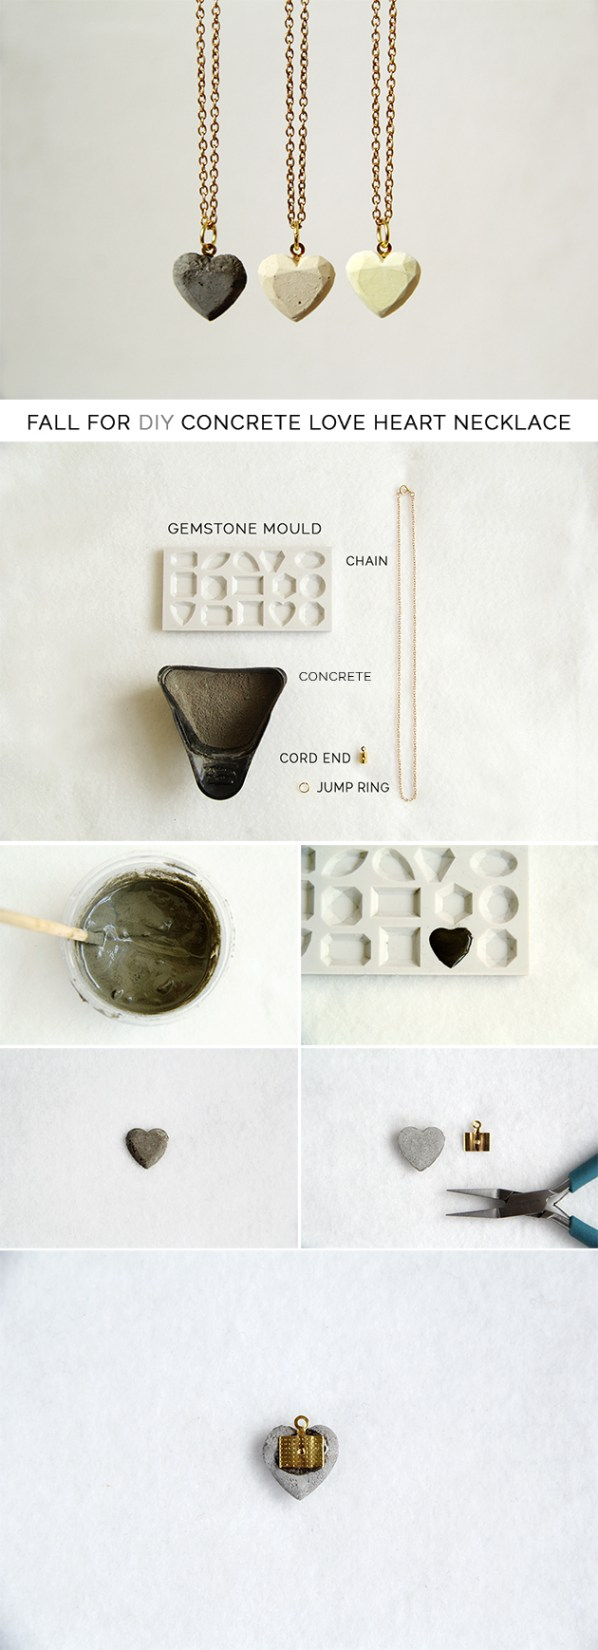 DIY-concrete-heart-necklace-1